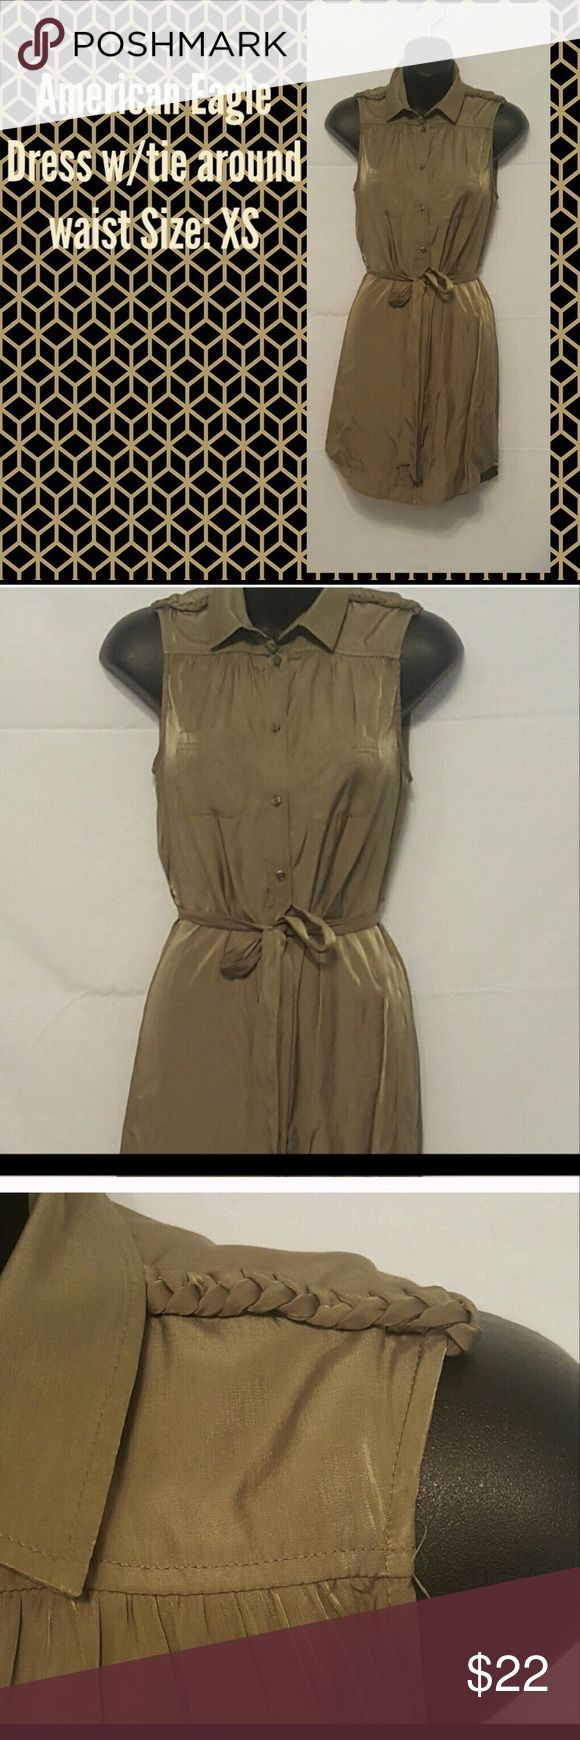 """""""American Eagle"""" Dress w/ tie around waist. This AmericN Eagle Dress is an army green casual button down dress with a tie that wraps the waist showing off a curvy figure and a tiny waist. One of the most unique features are in the shoulders were there are braided bands if the same color stretching from the neck on both sides to the end of shoulders. American Eagle Outfitters Dresses Mini"""